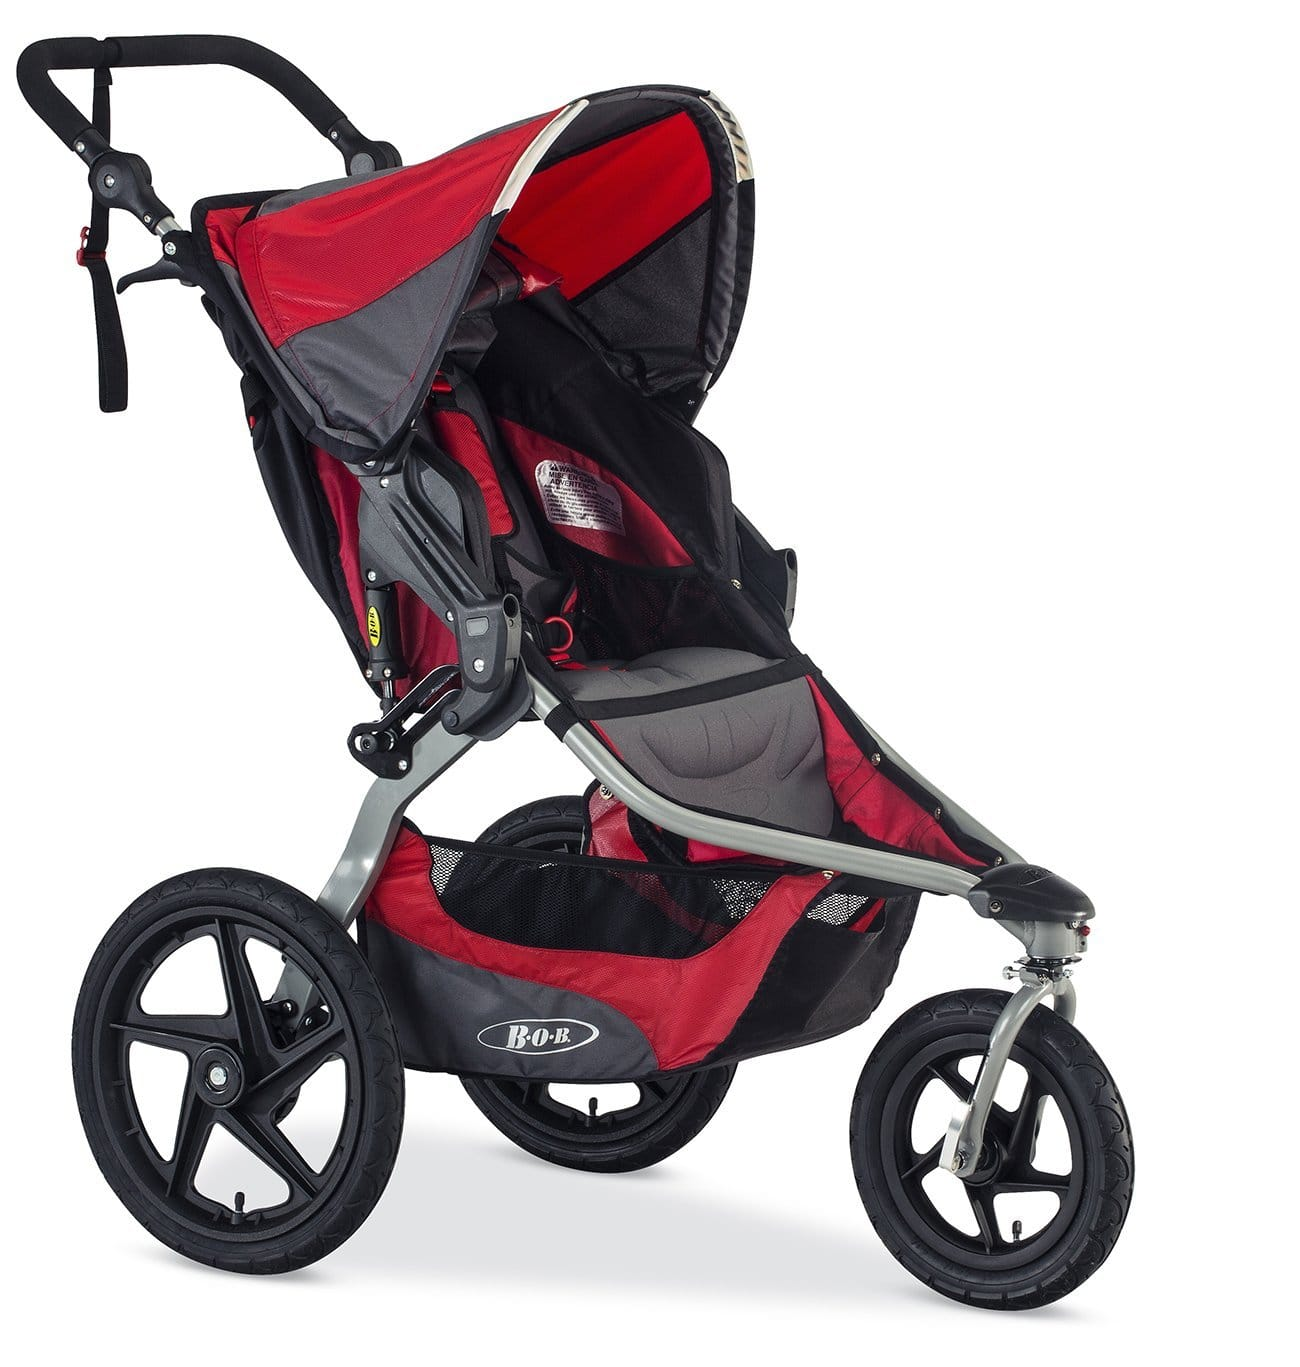 Bob Revolution Flex (2016) Jogging Stroller Red  @ Amazon $319.99